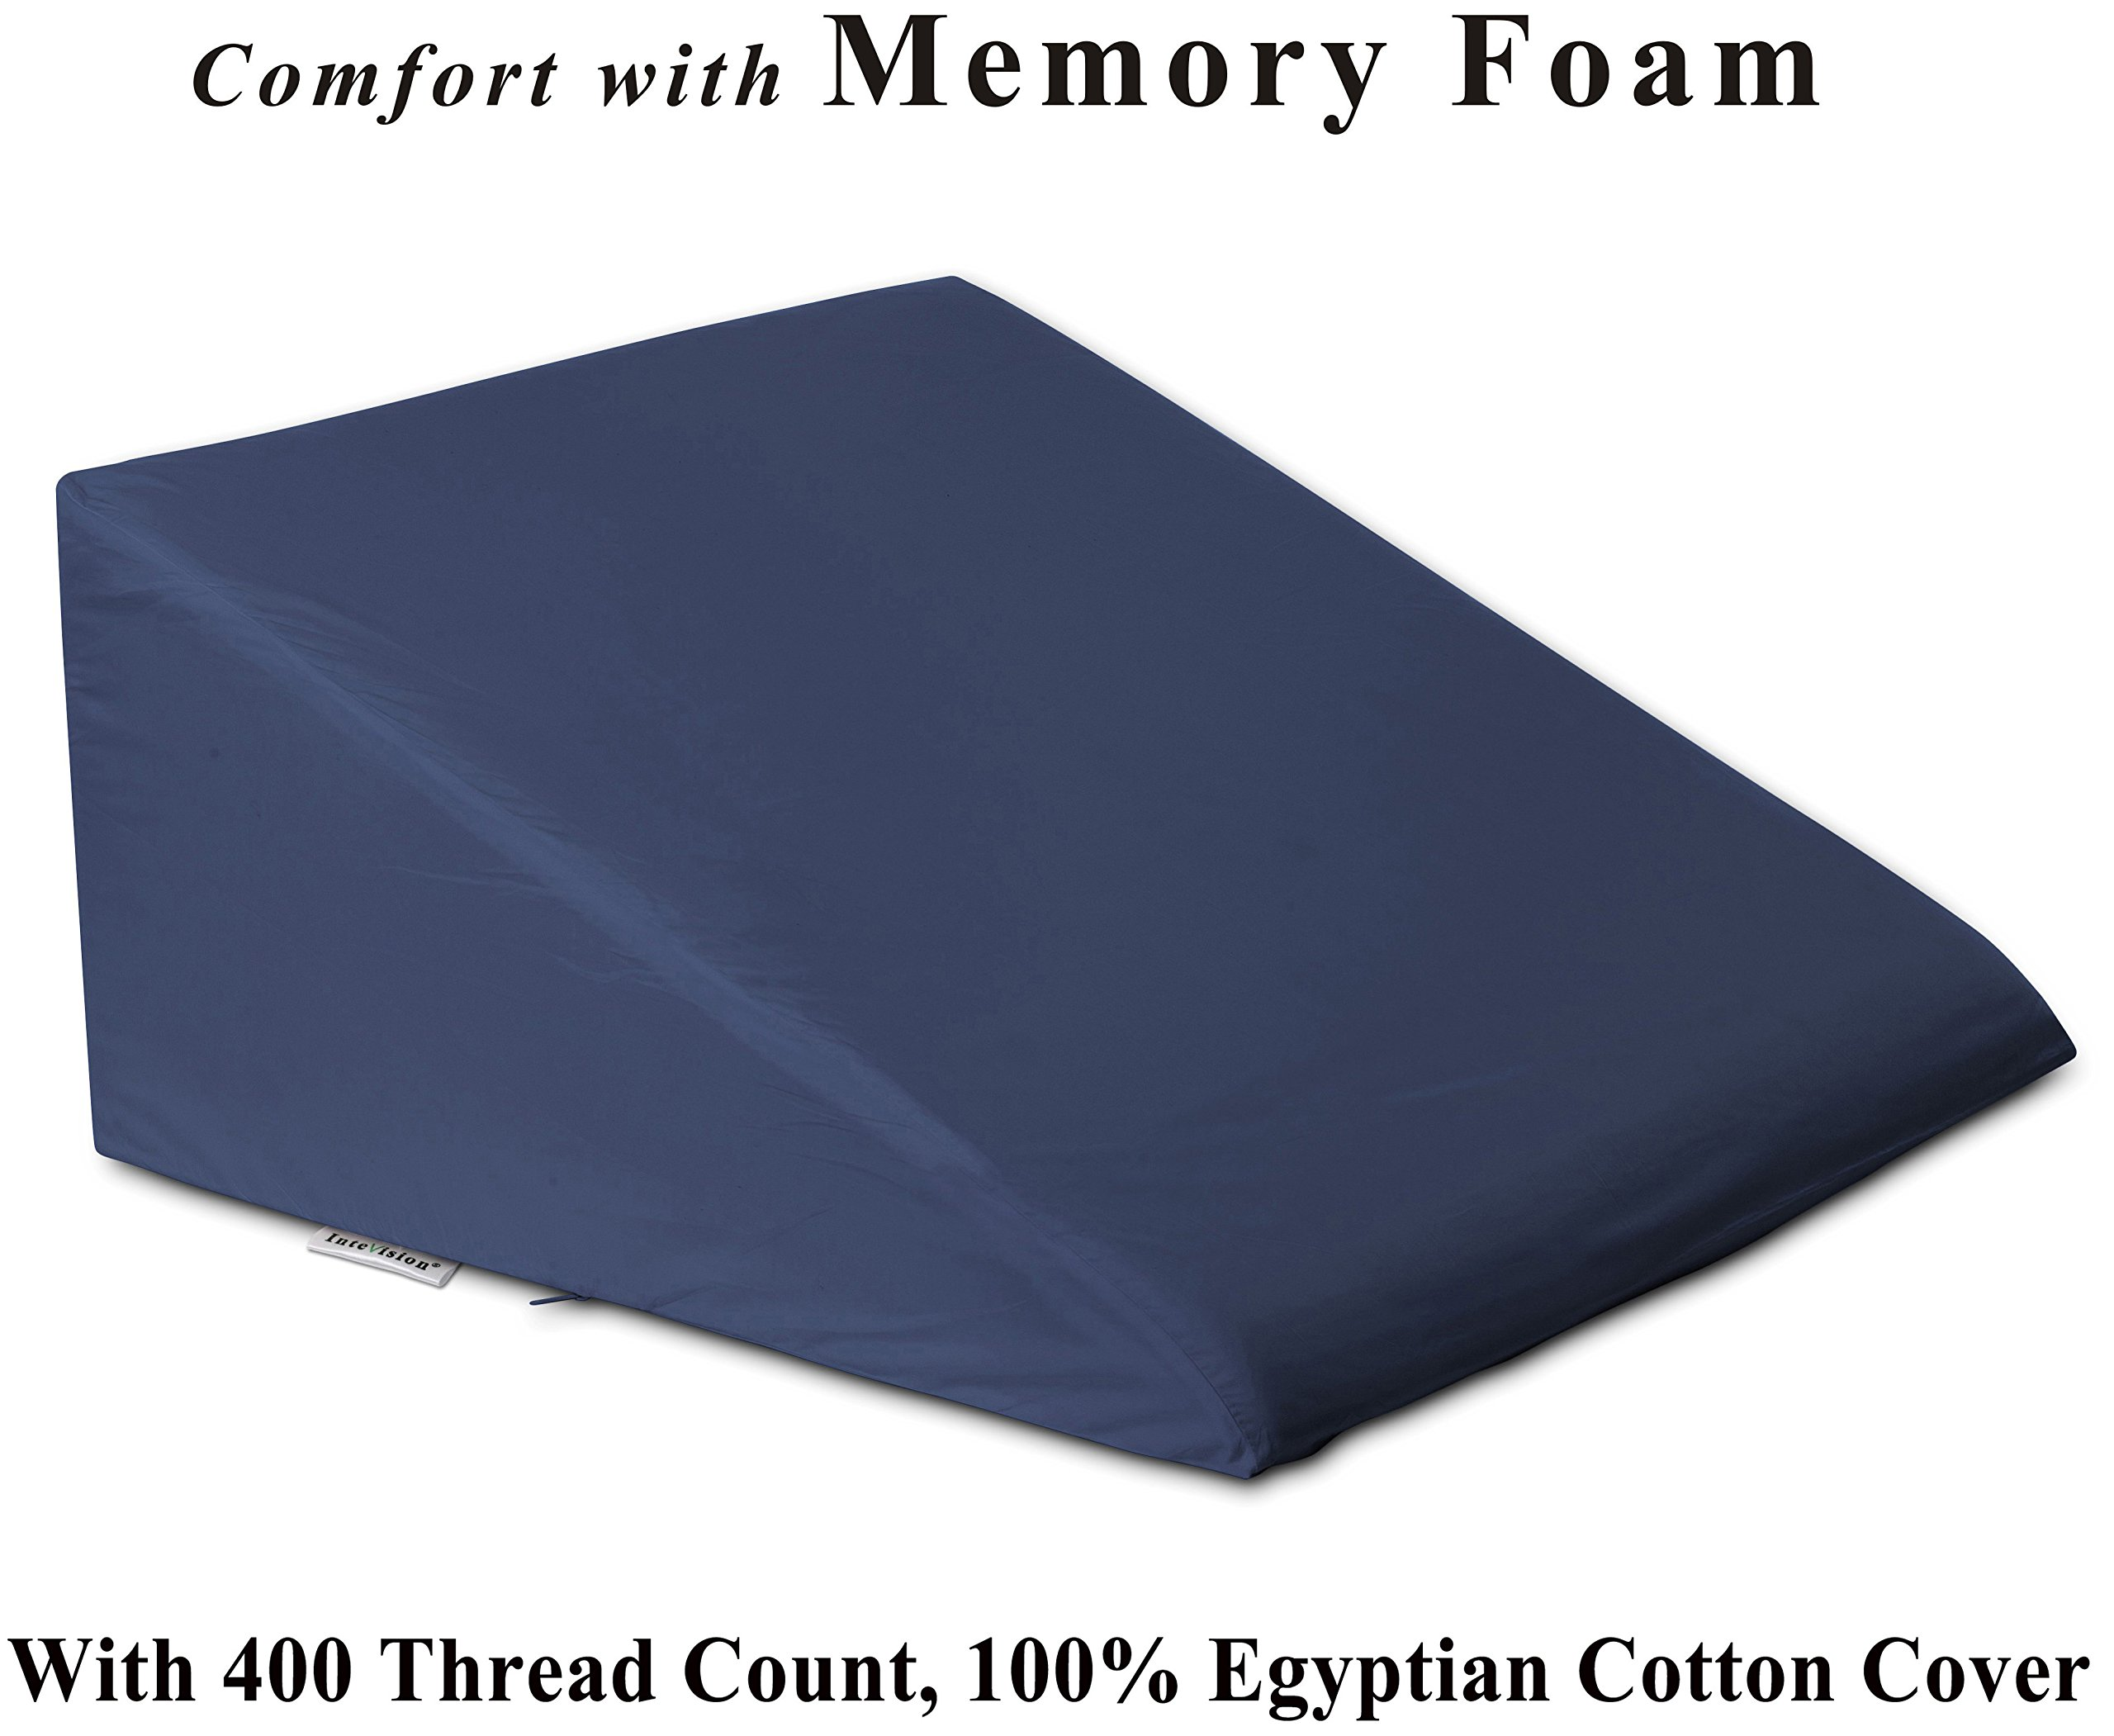 InteVision Foam Wedge Bed Pillow (25'' x 24'' x 12'') with Egyptian Cotton Cover (400 Thread Count)